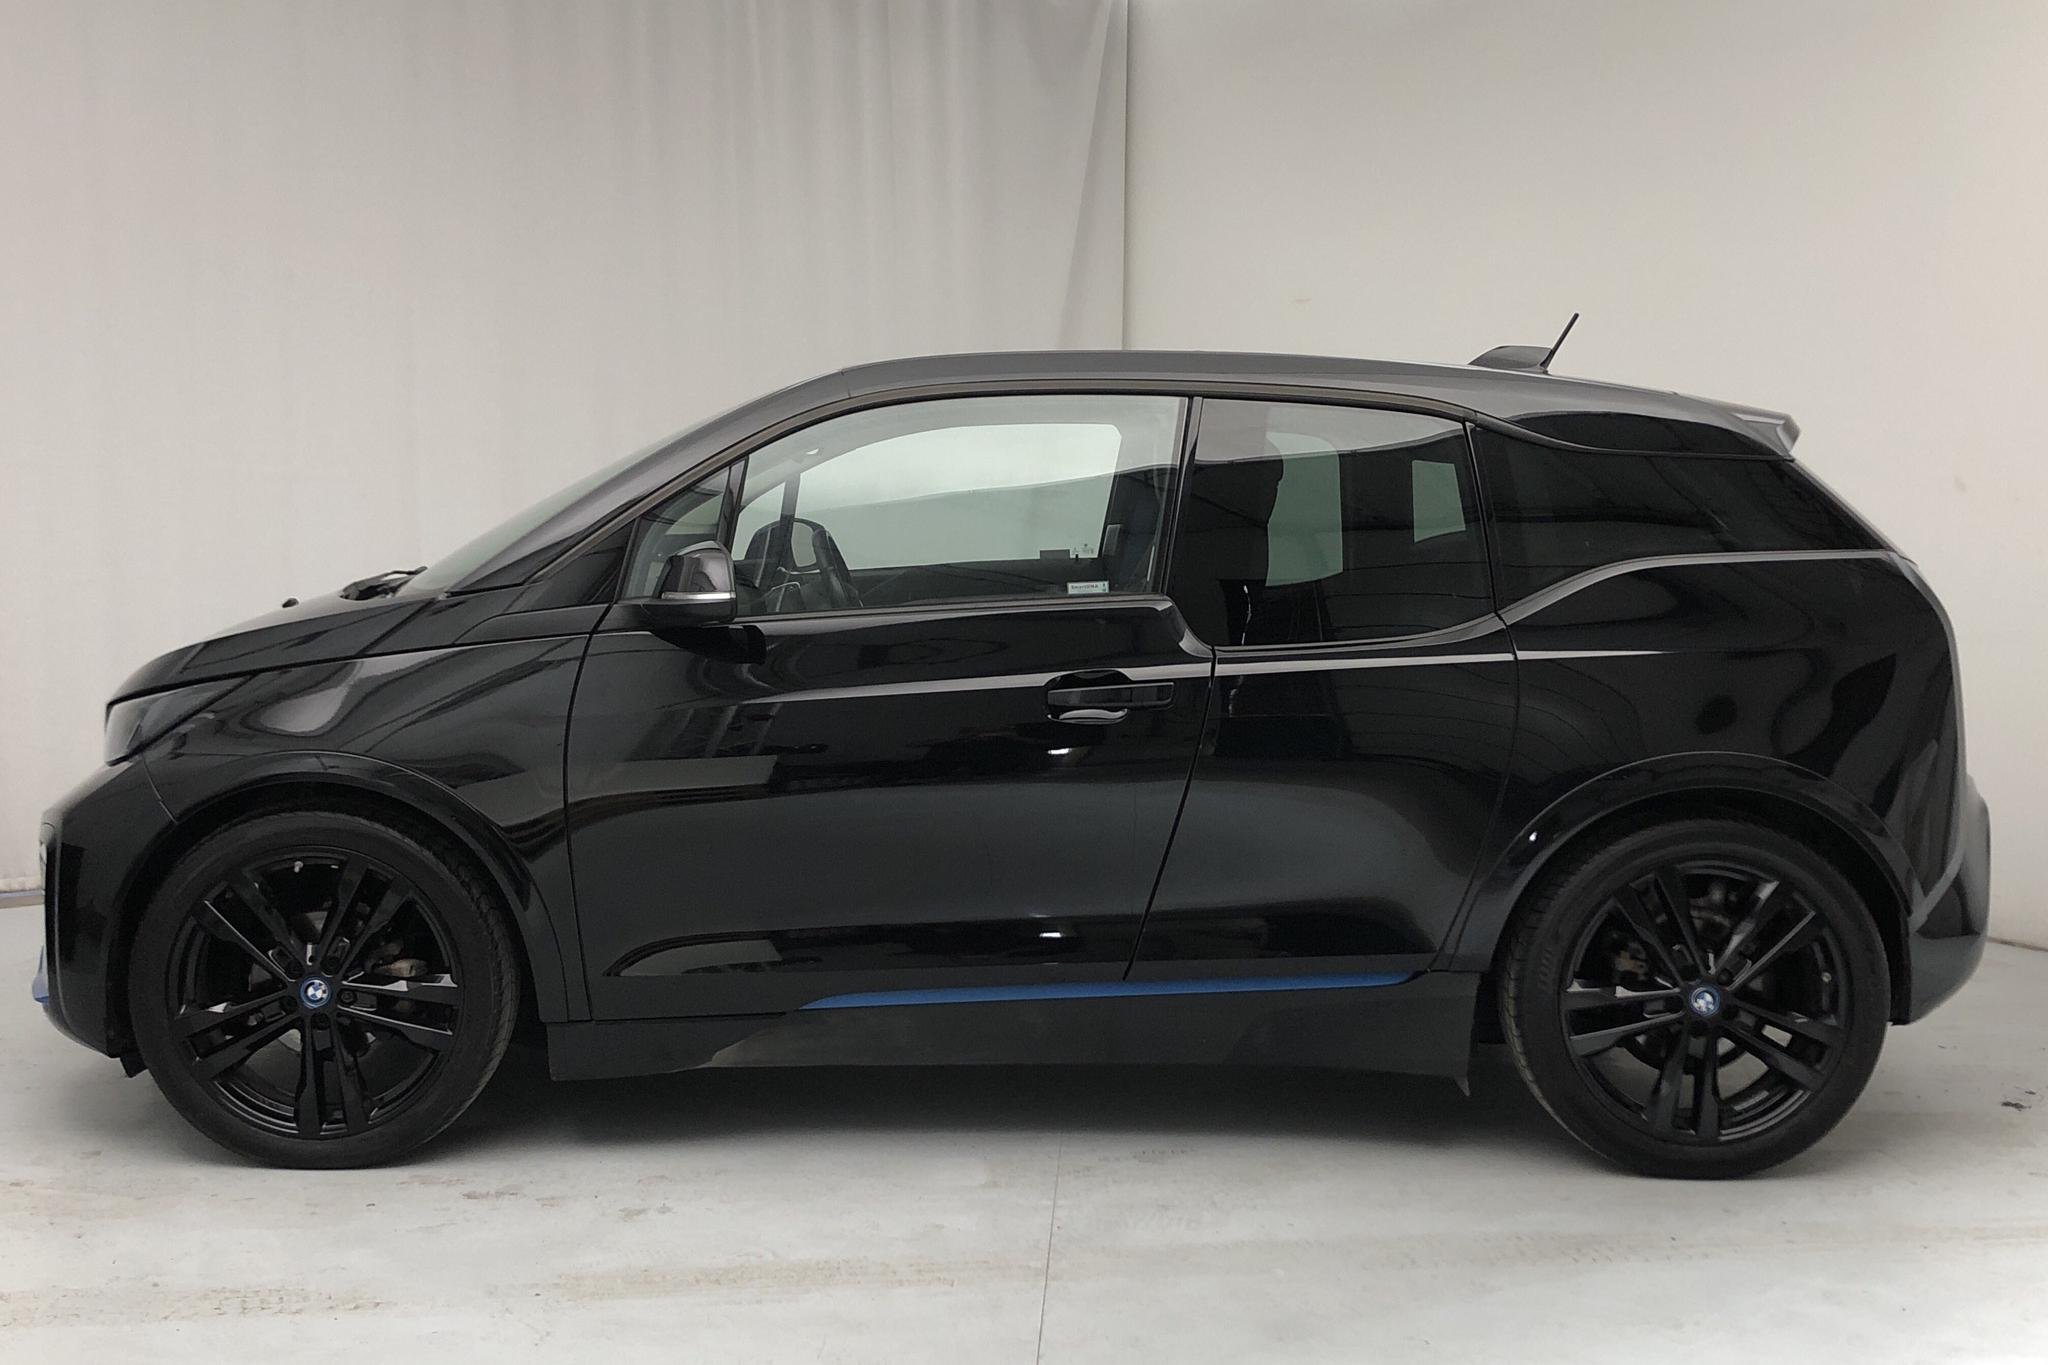 BMW i3s 94Ah, I01 (184hk) - 60 760 km - Automatic - black - 2018